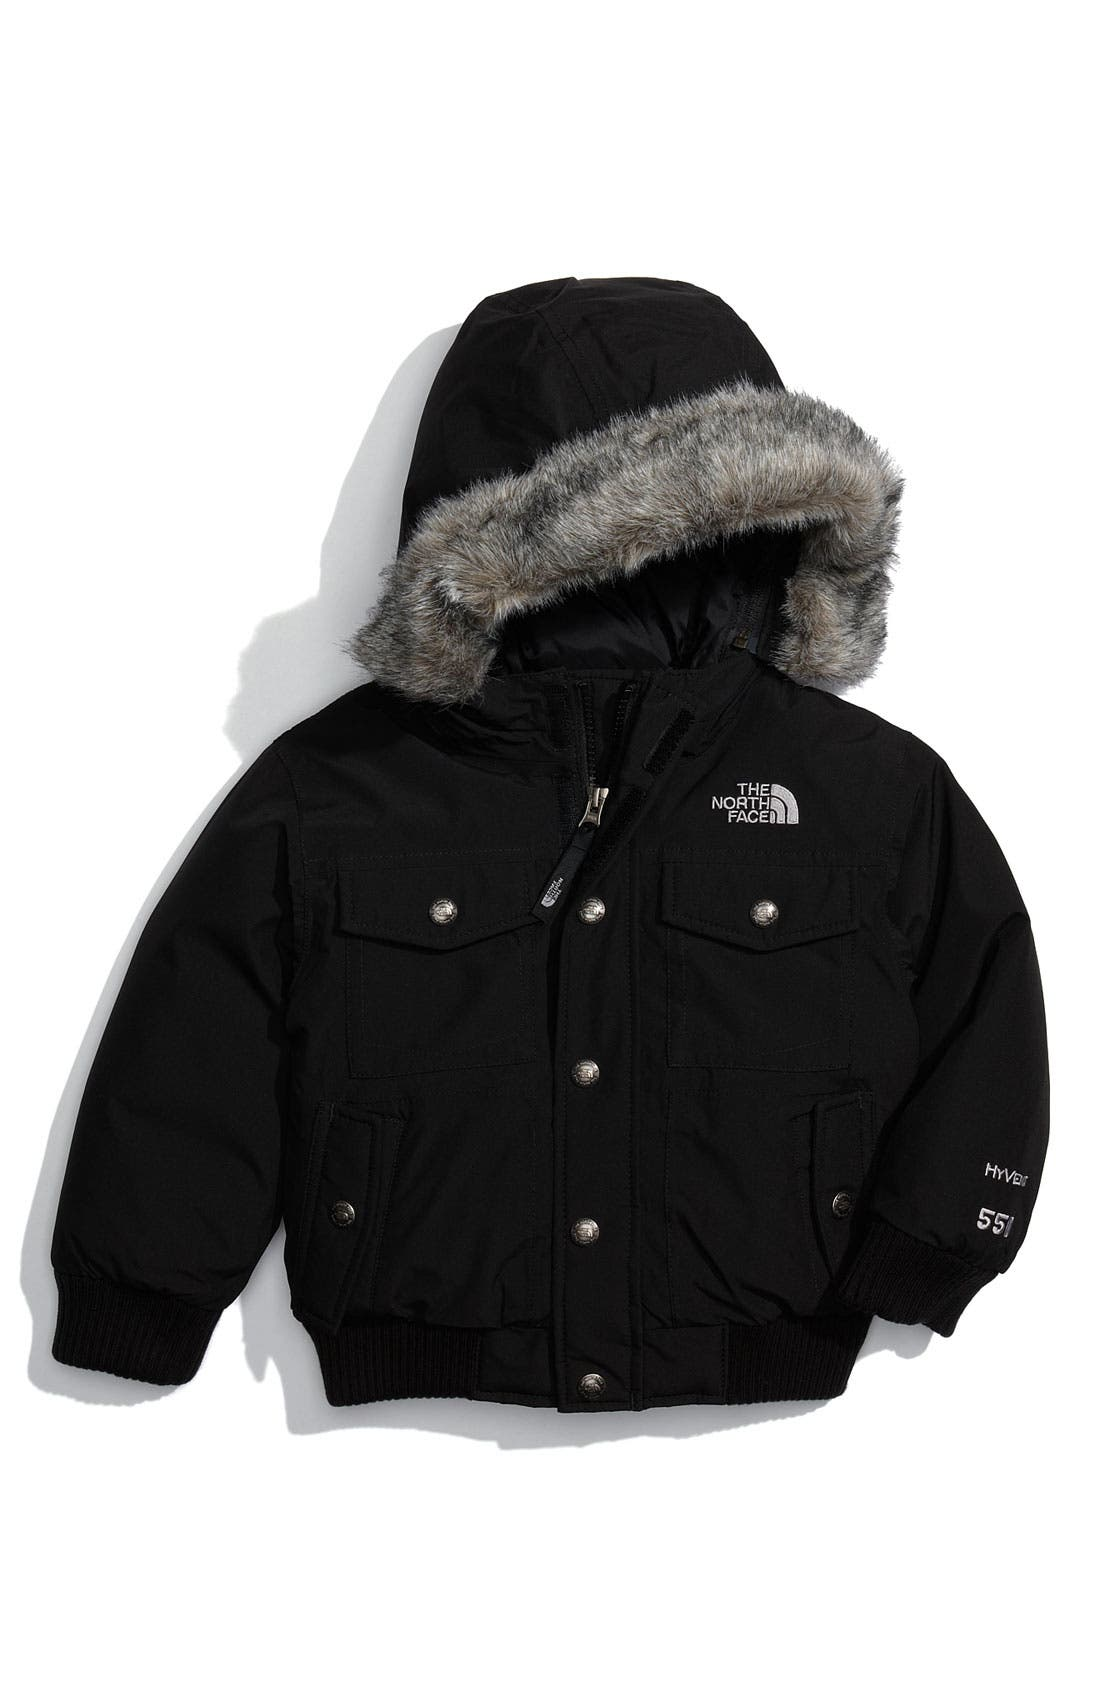 Alternate Image 1 Selected - The North Face 'Gotham' Down Jacket (Toddler)